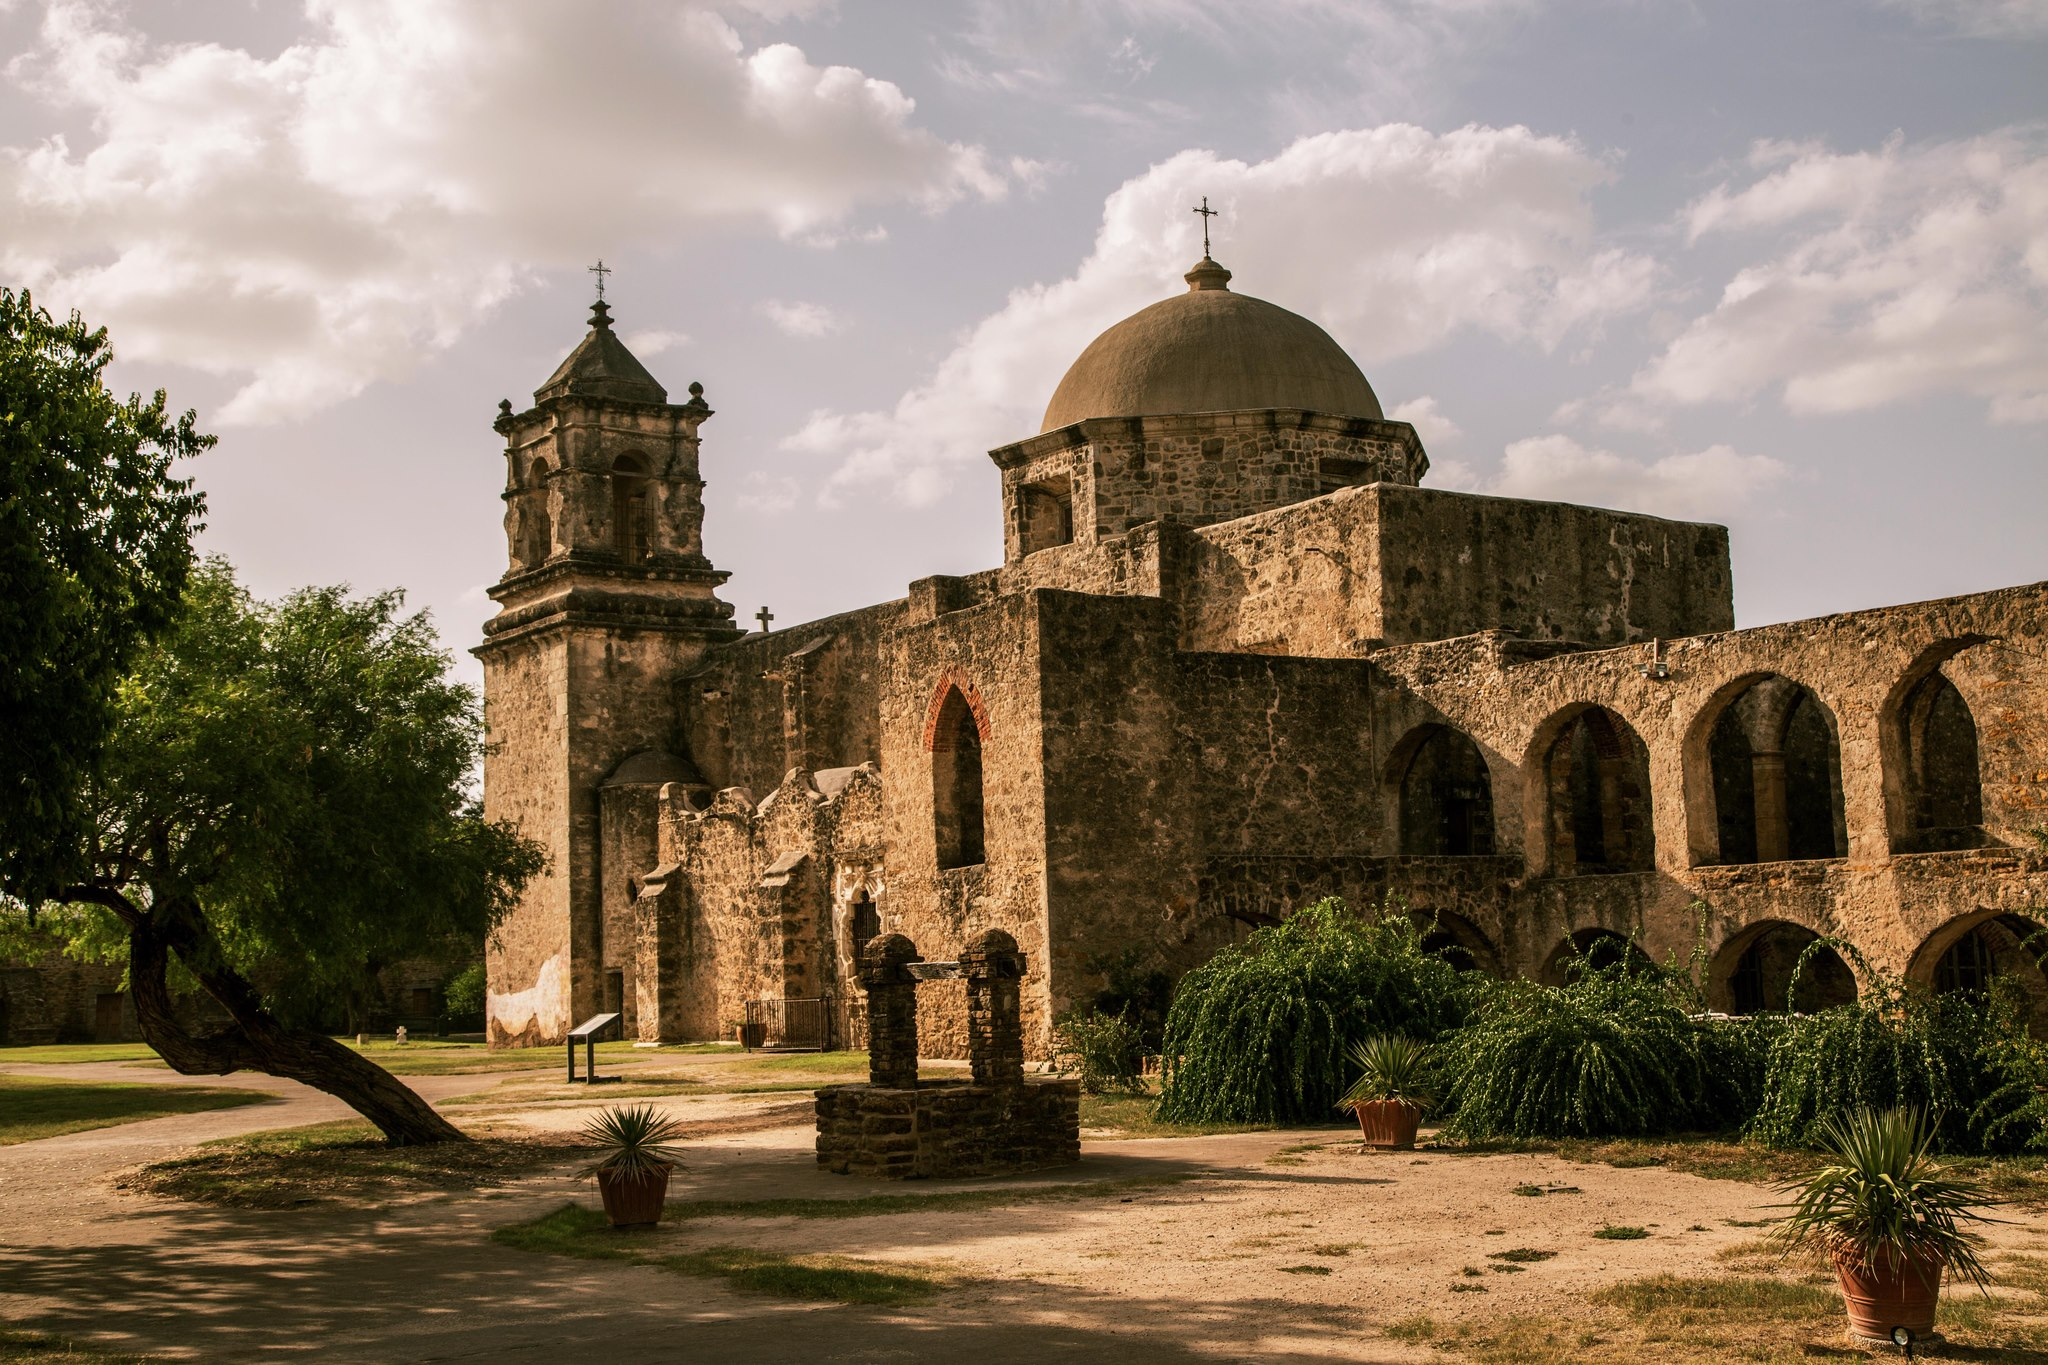 Travel: Missions in Texas offer eye-opening look at Indian history